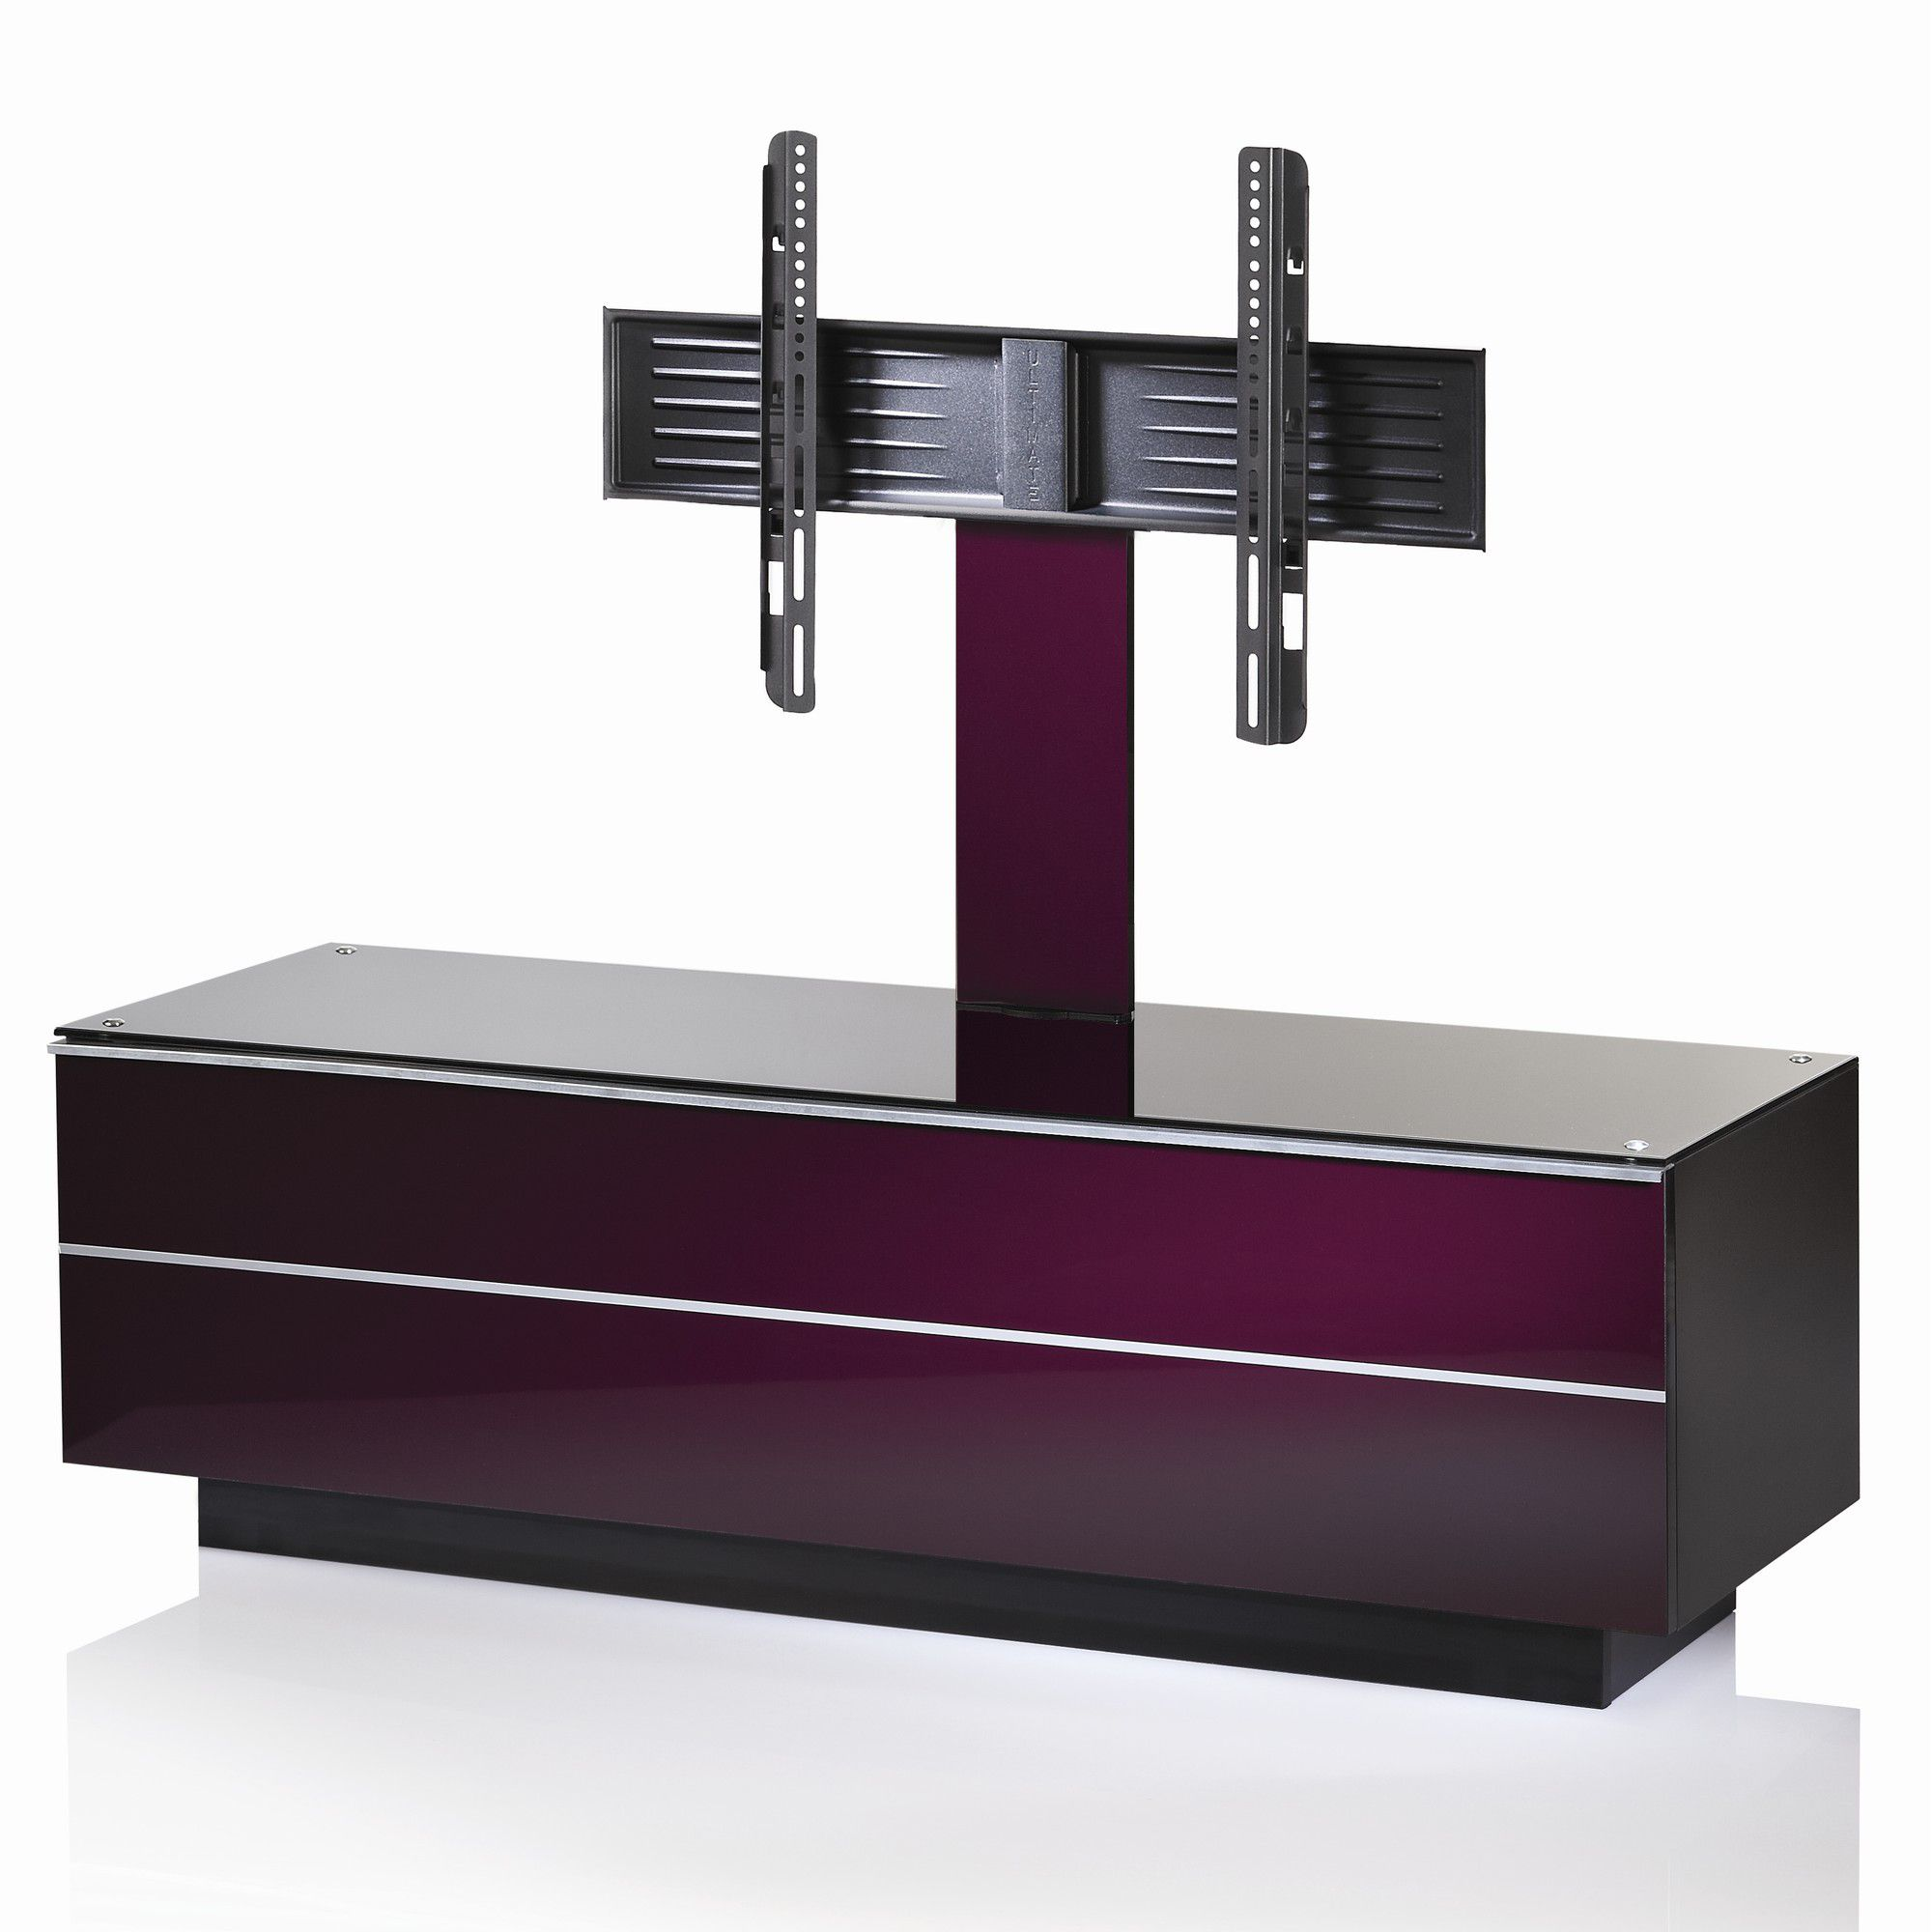 UK-CF G Series GS TV Stand - Damson - 135cm at Tesco Direct